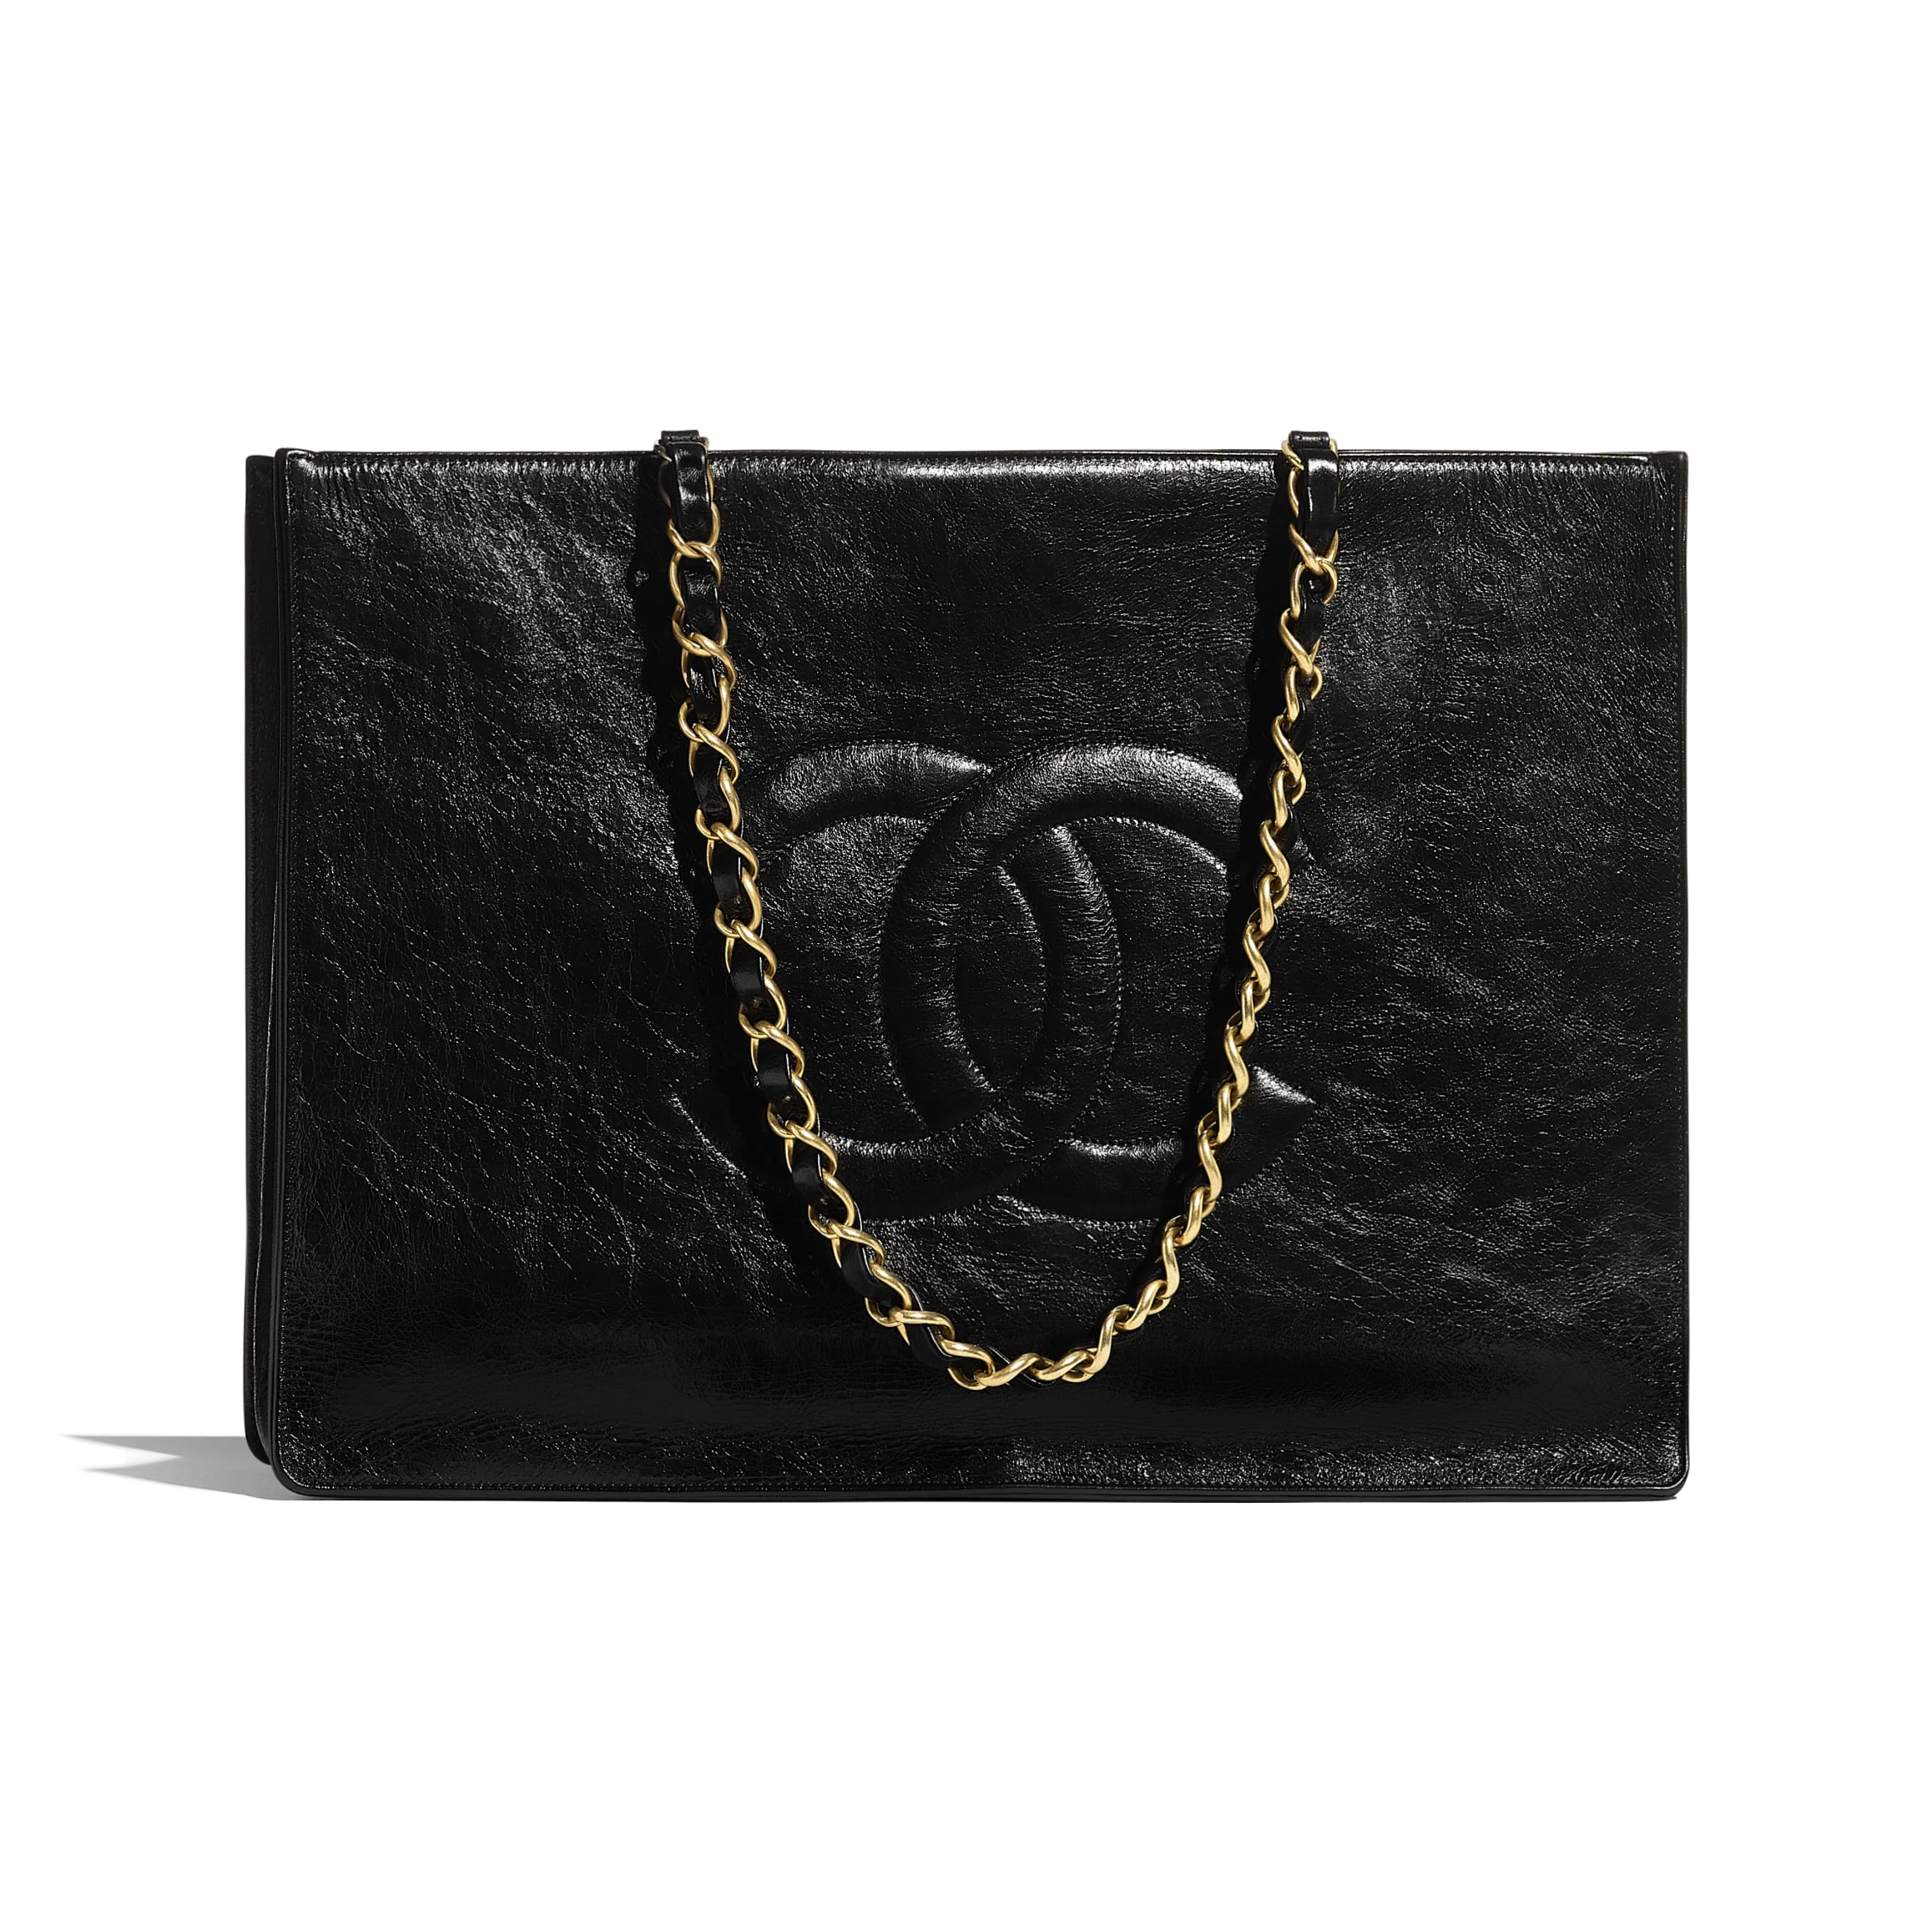 Large Shopping Bag - Black - Shiny Aged Calfskin & Gold-Tone Metal - CHANEL - Default view - see standard sized version